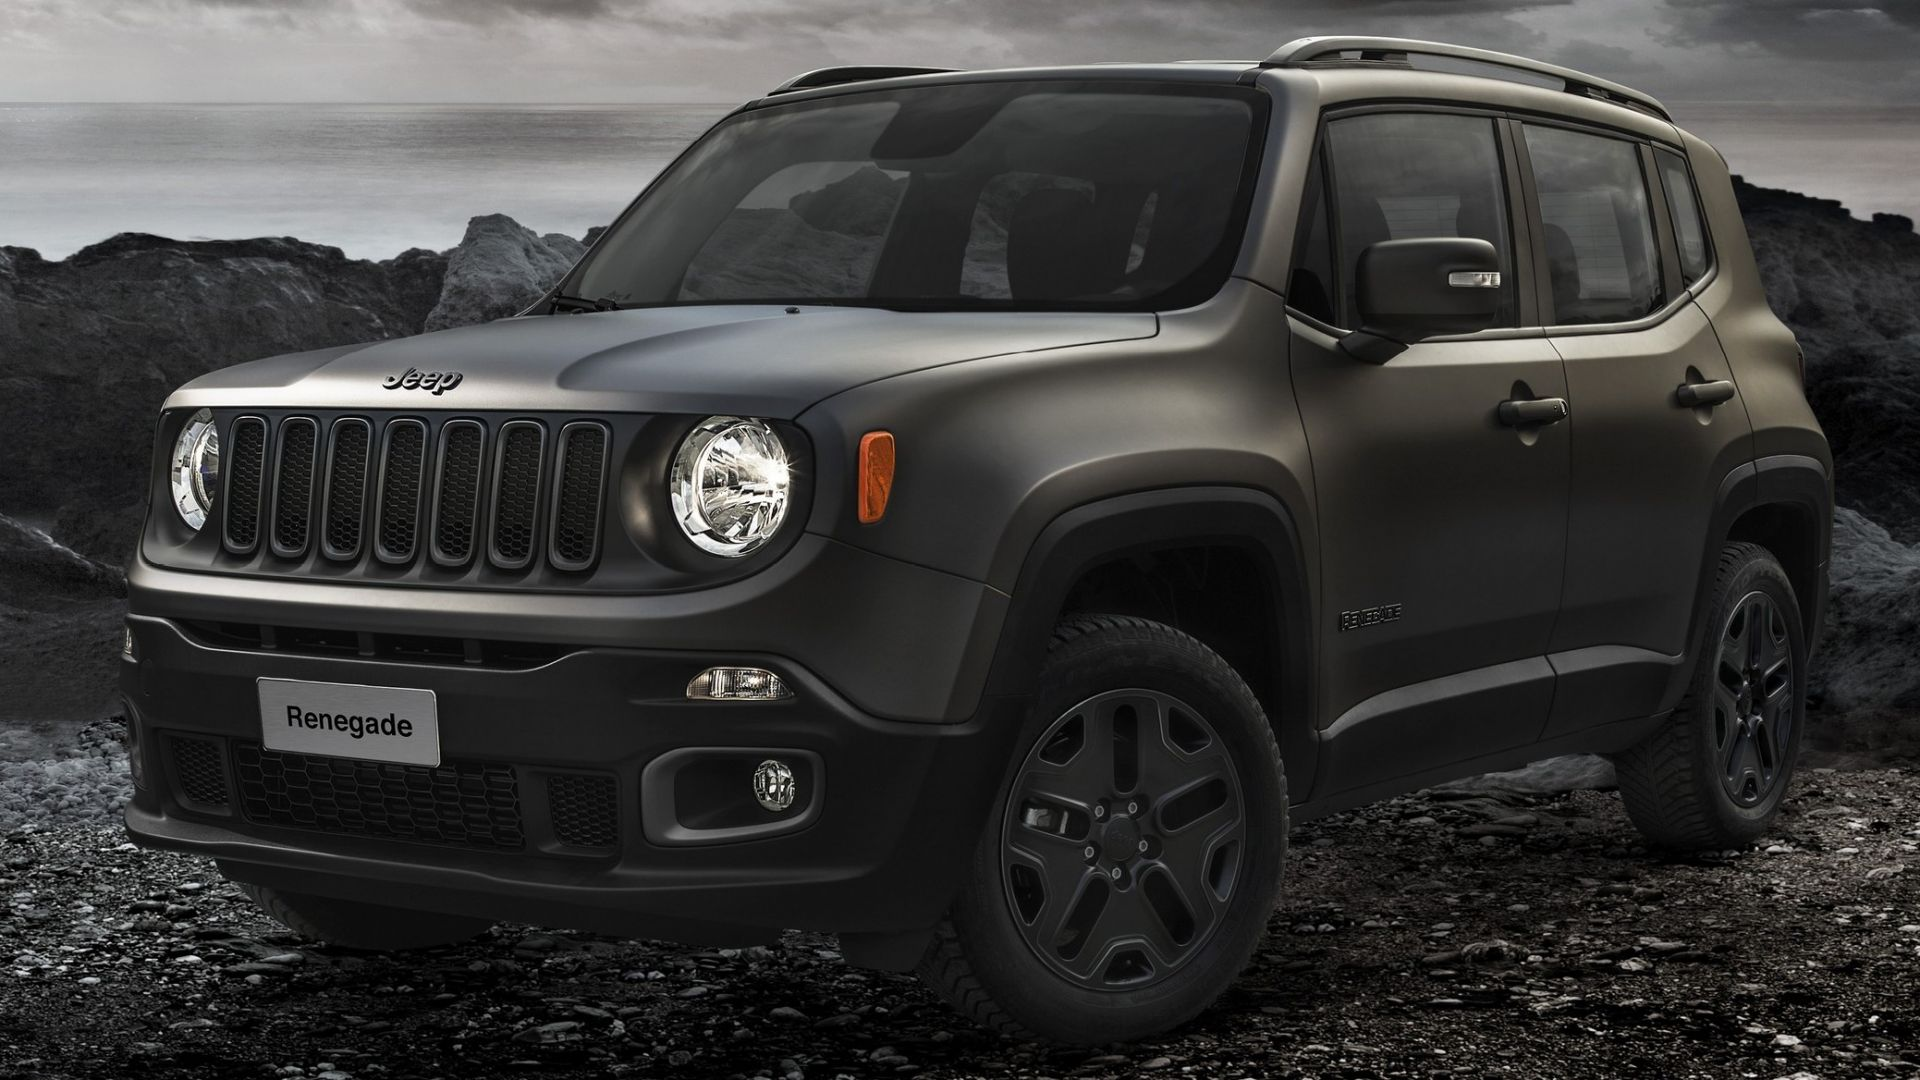 Novit Auto Jeep Renegade Night Eagle Motorbox HD Wallpapers Download free images and photos [musssic.tk]